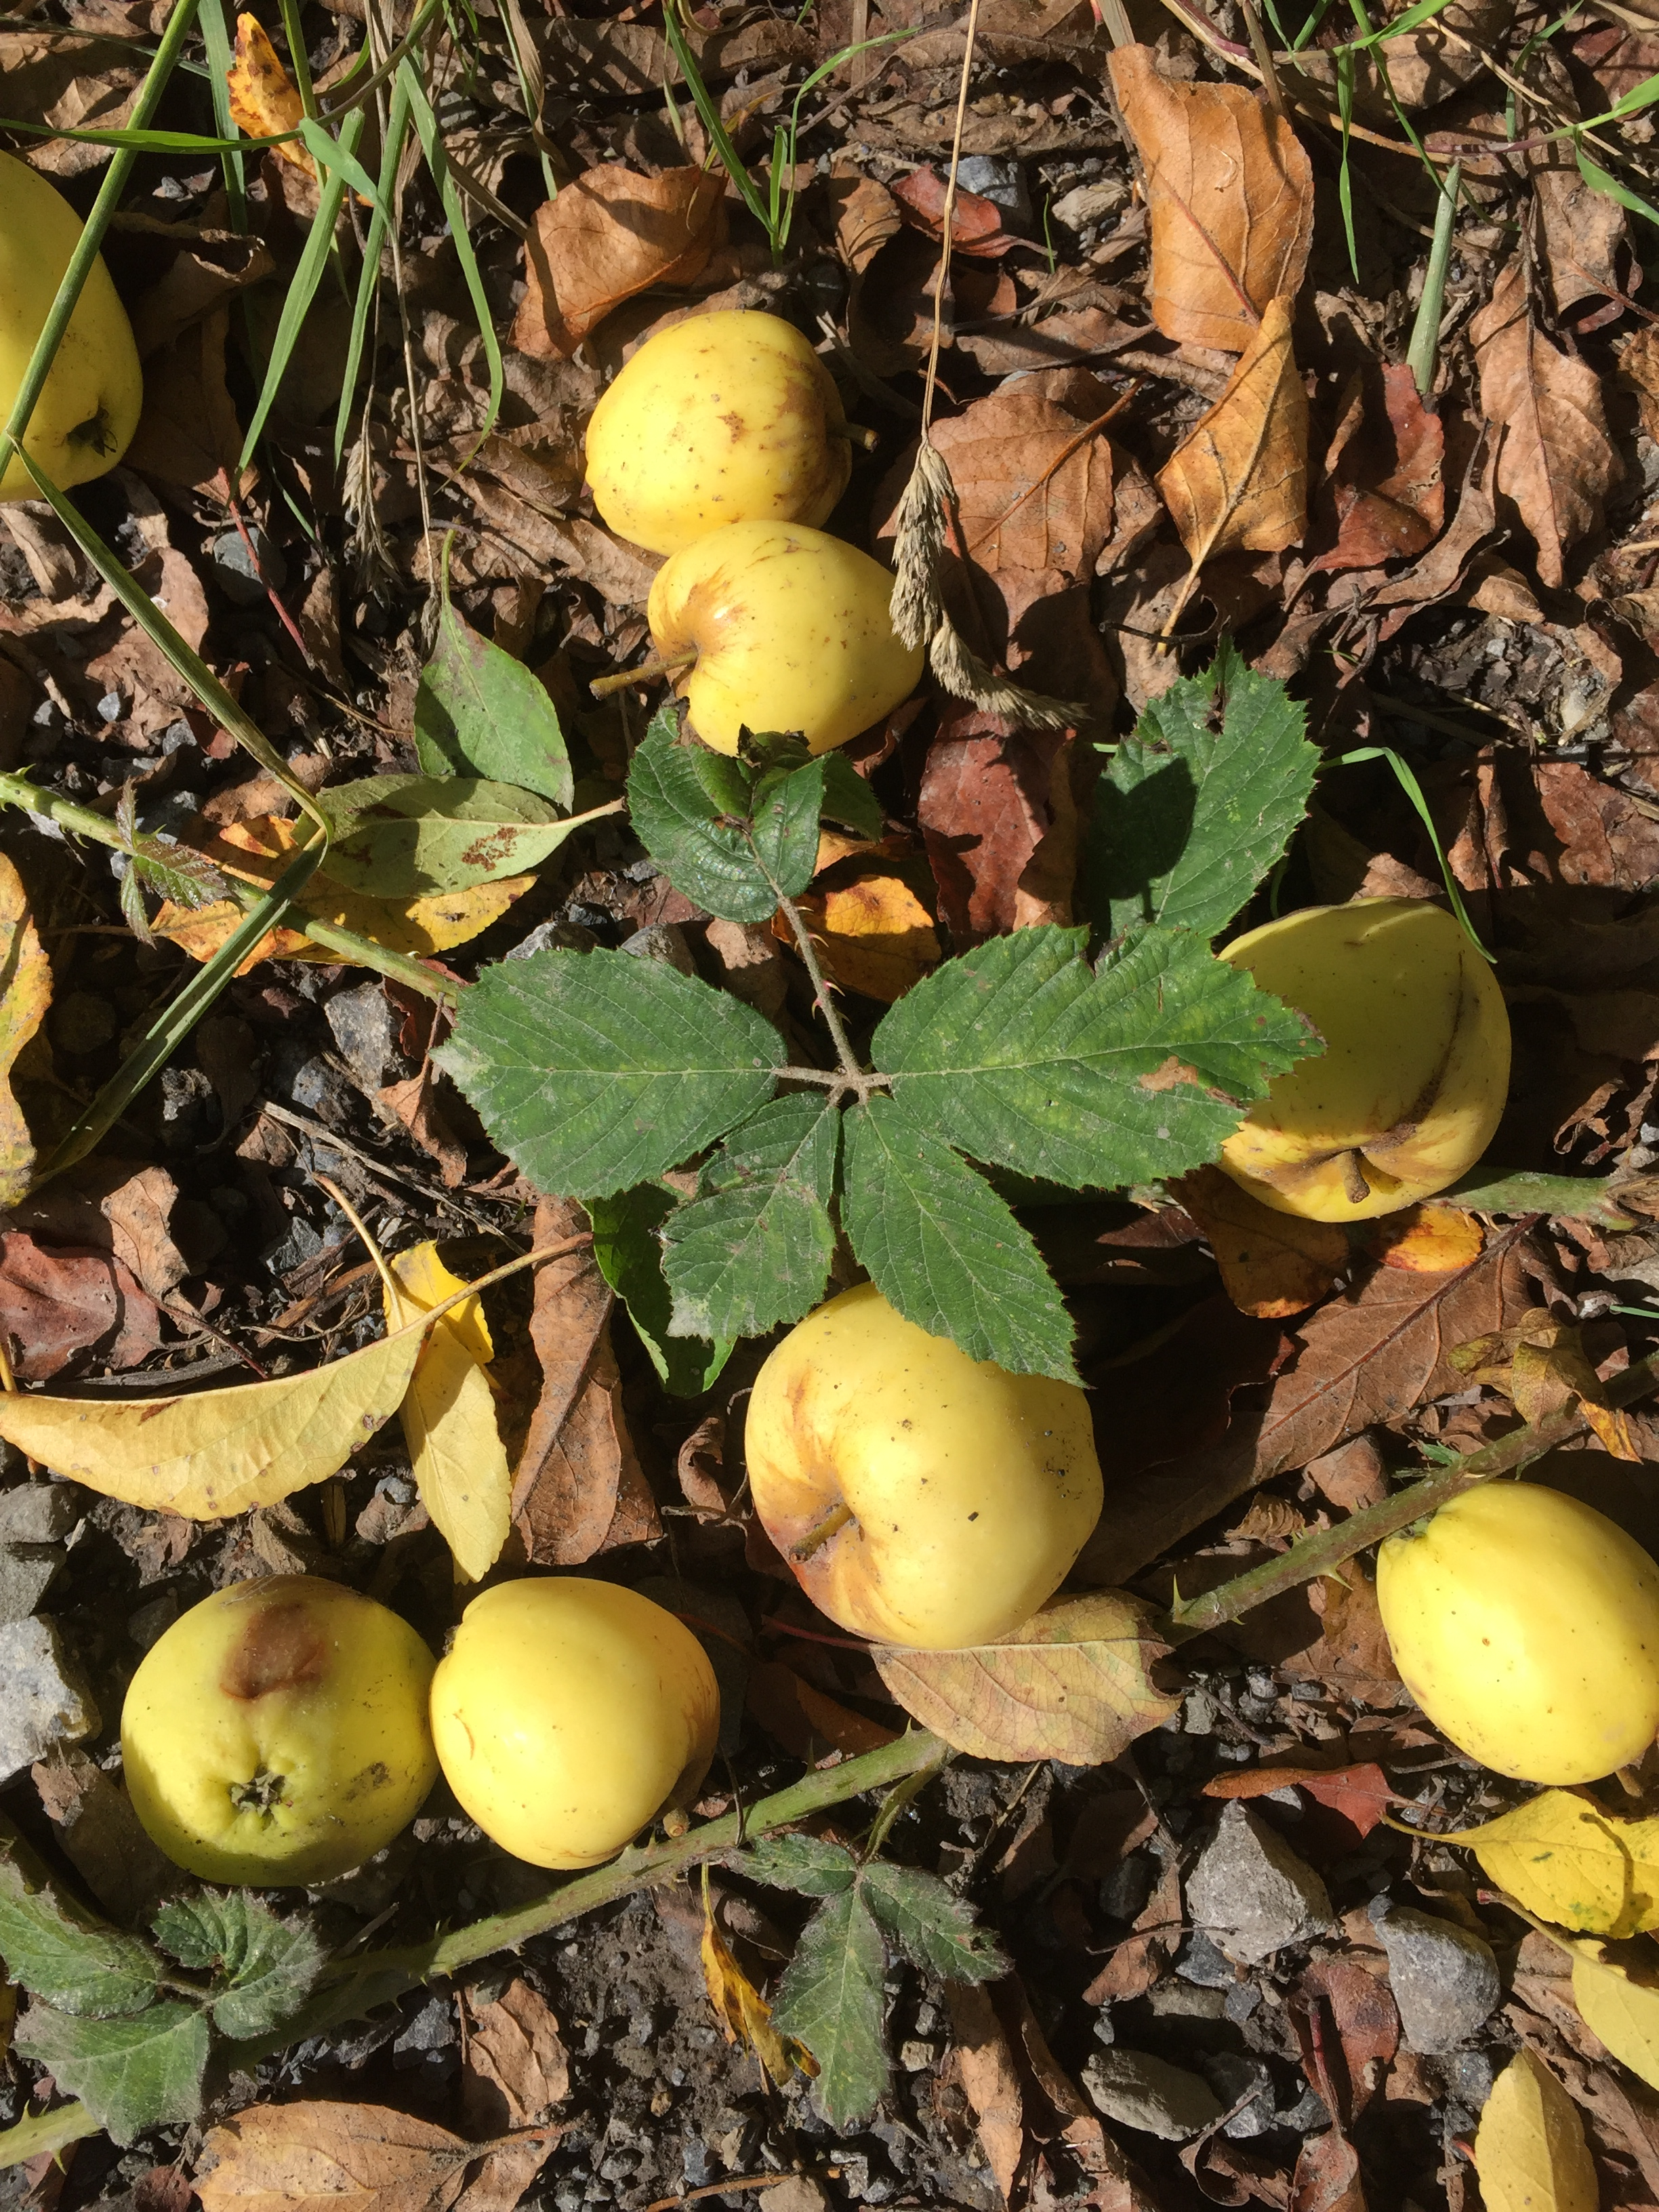 Crab apple windfalls on a lane in early September. Time to make crab apple jelly. I have never achieved this but I remember my mother straining the jelly through a muslin bag.